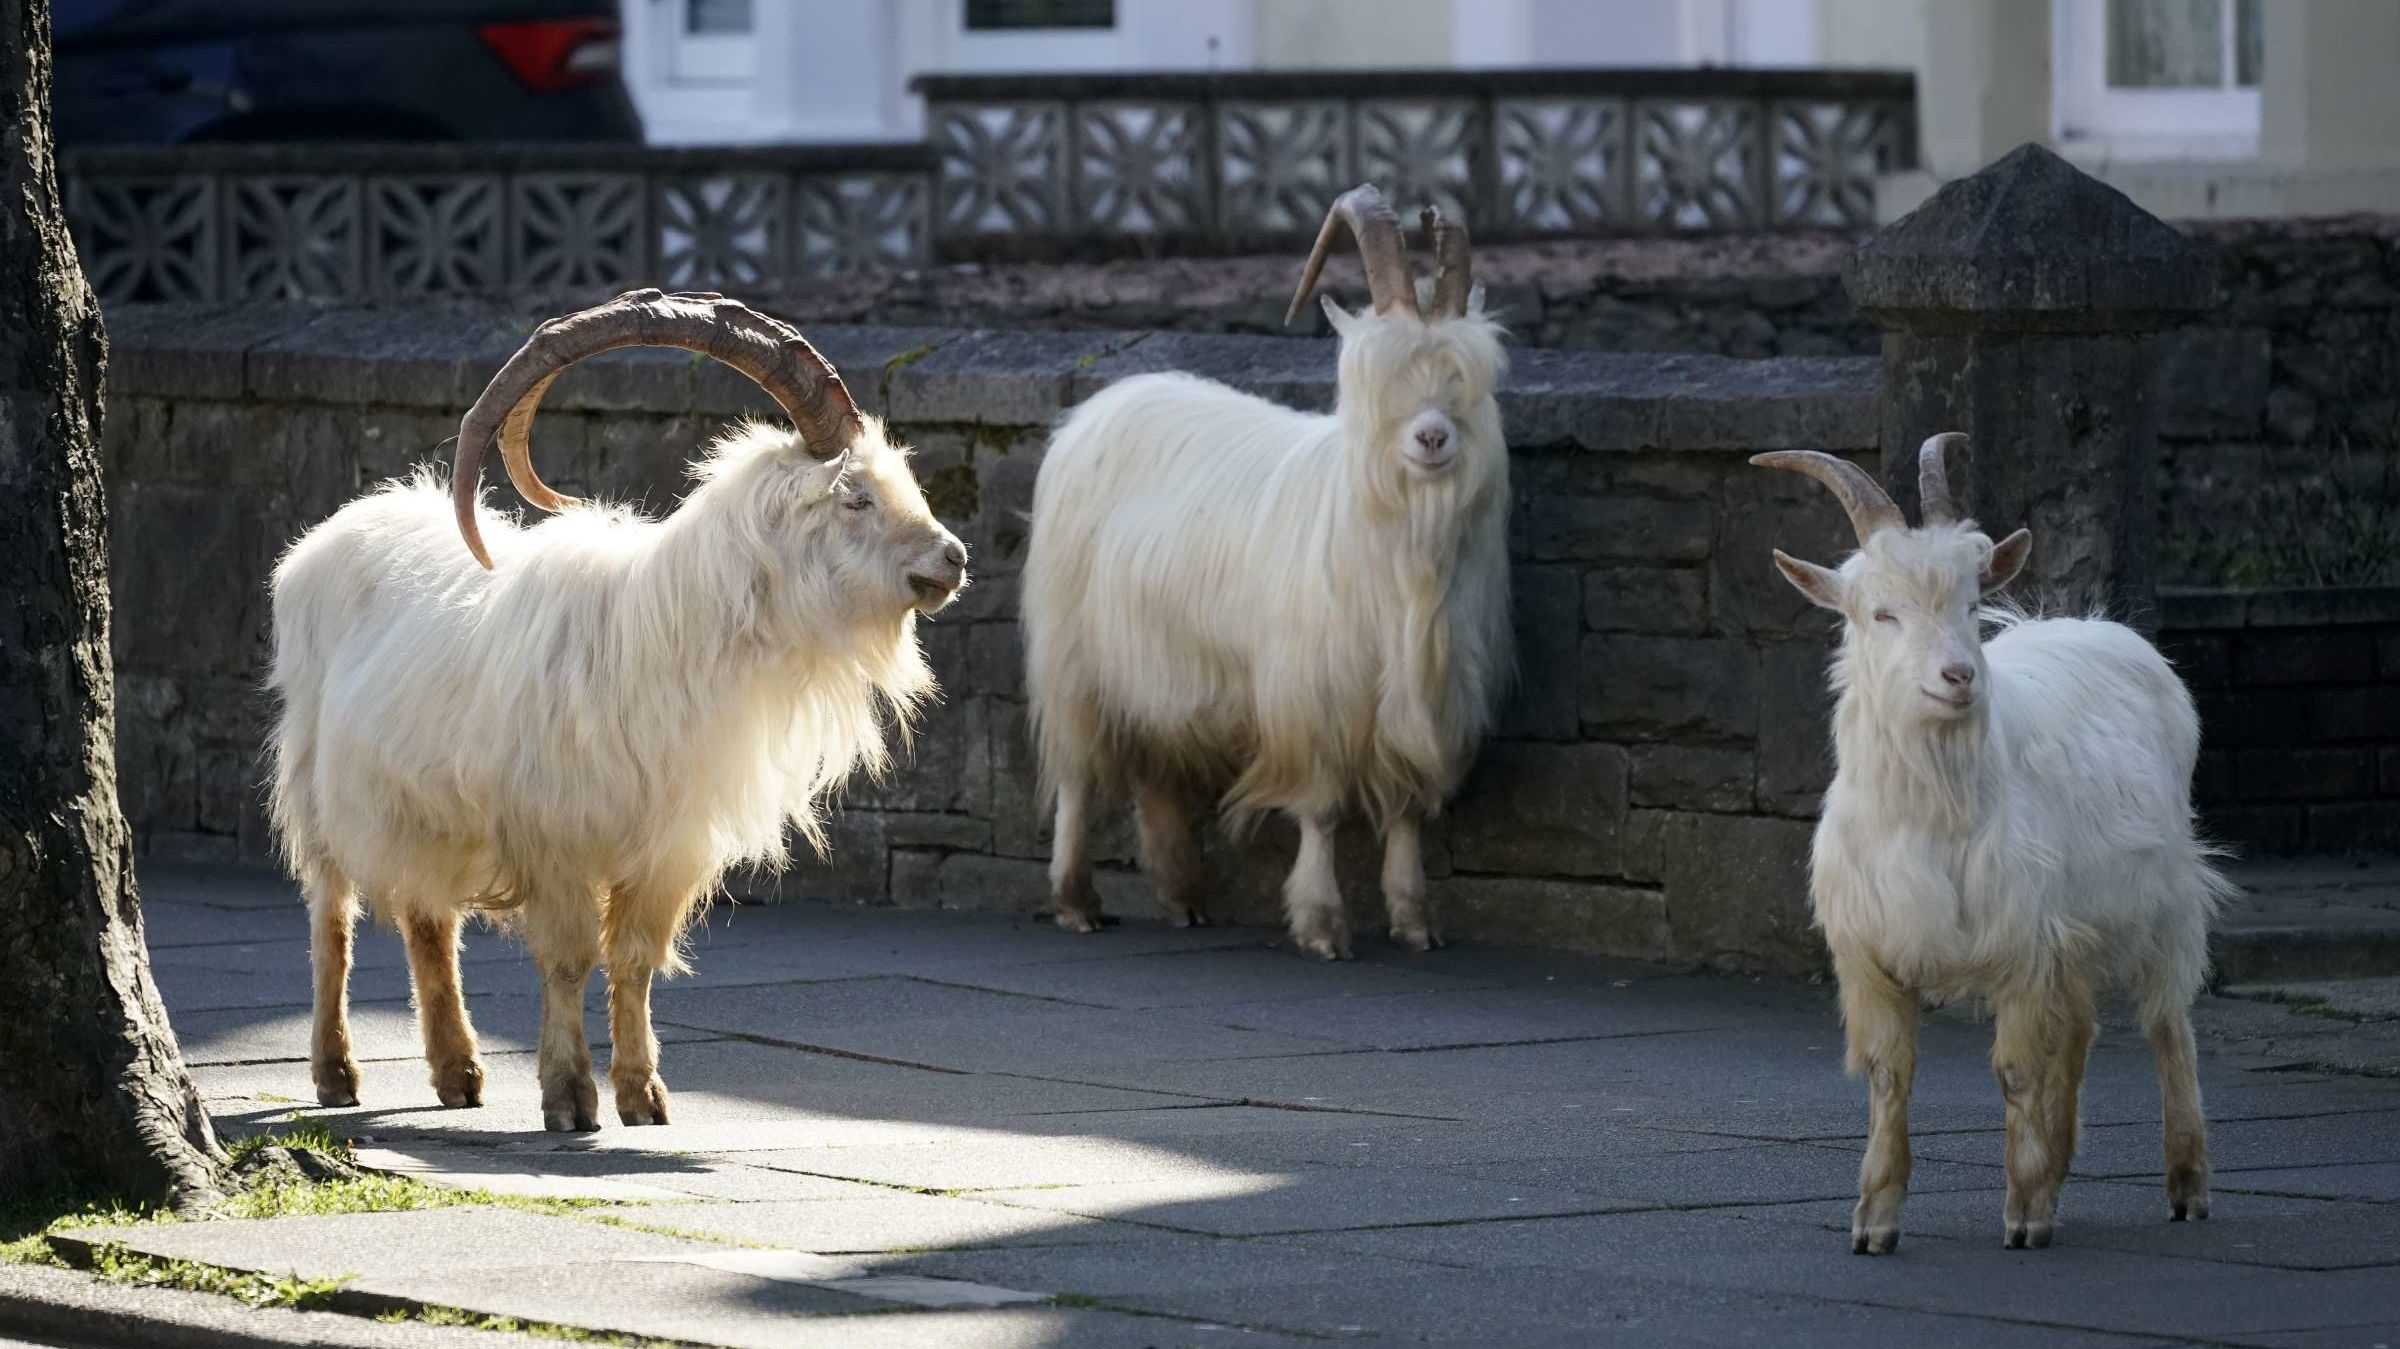 Goat Your Own Way: In North Wales, a Herd of Goats Is Taking Advantage of the Empty Streets